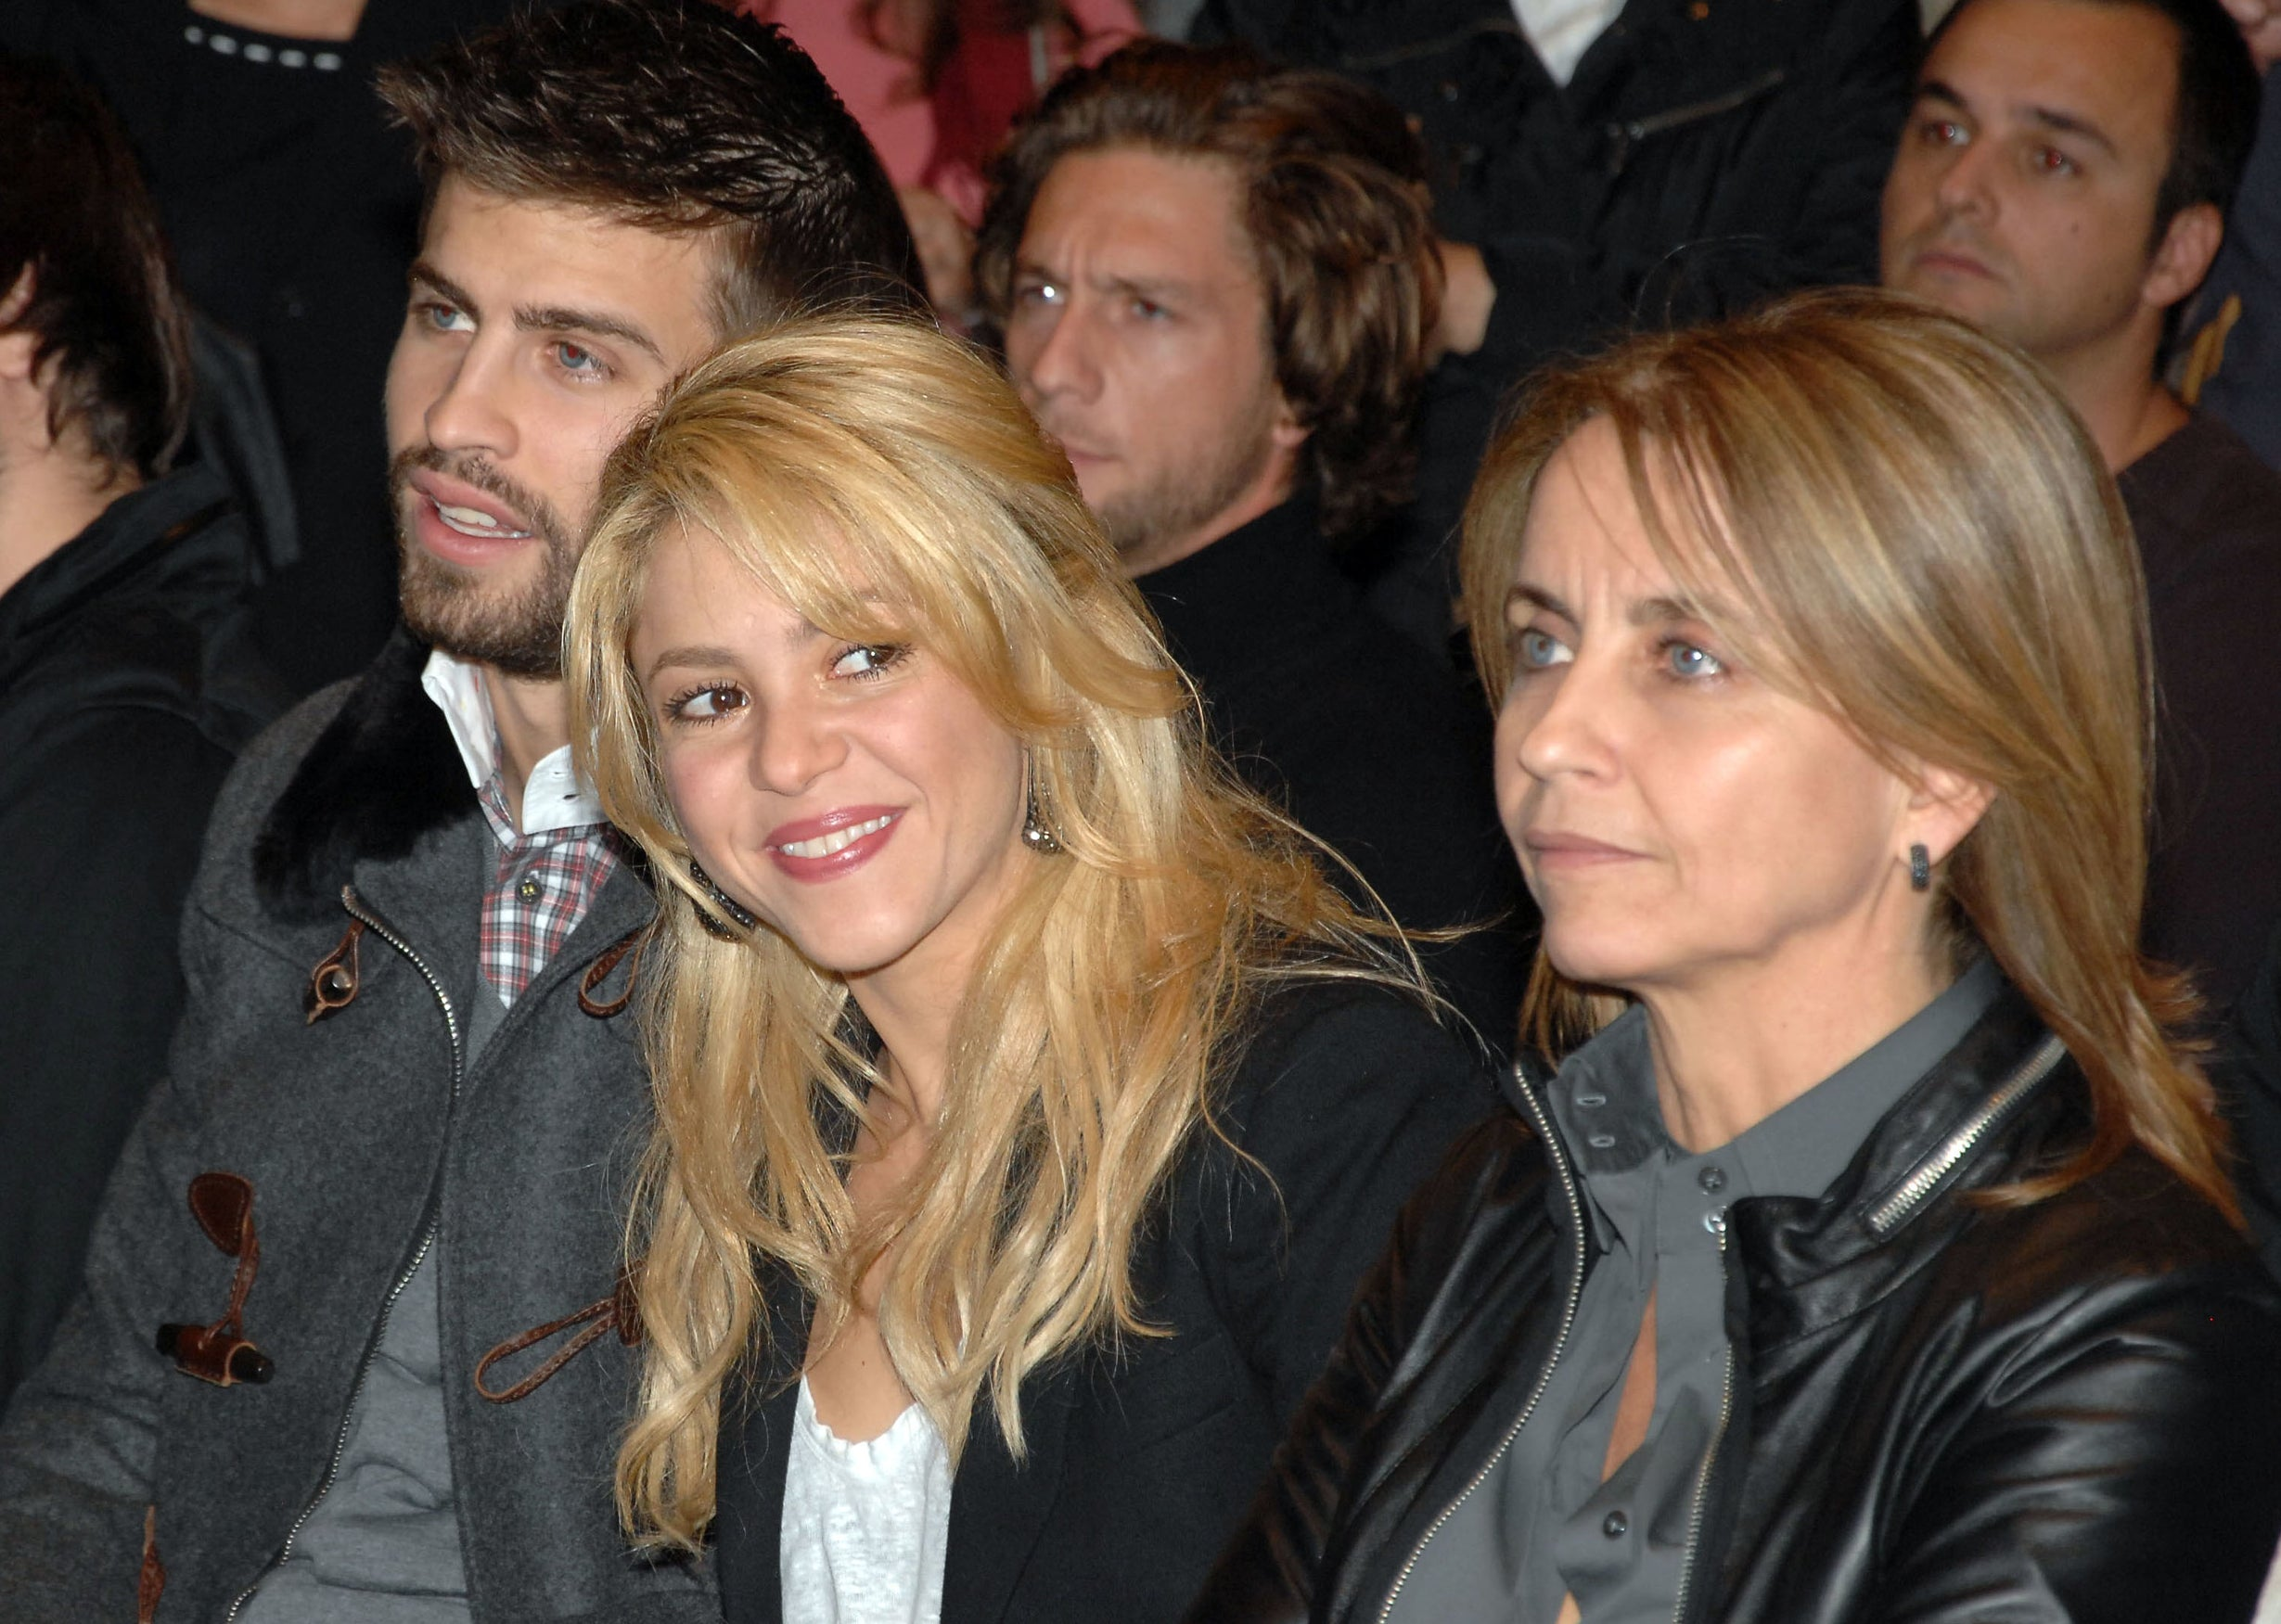 Shakira smiles while sitting next to her mother-in-law at an event